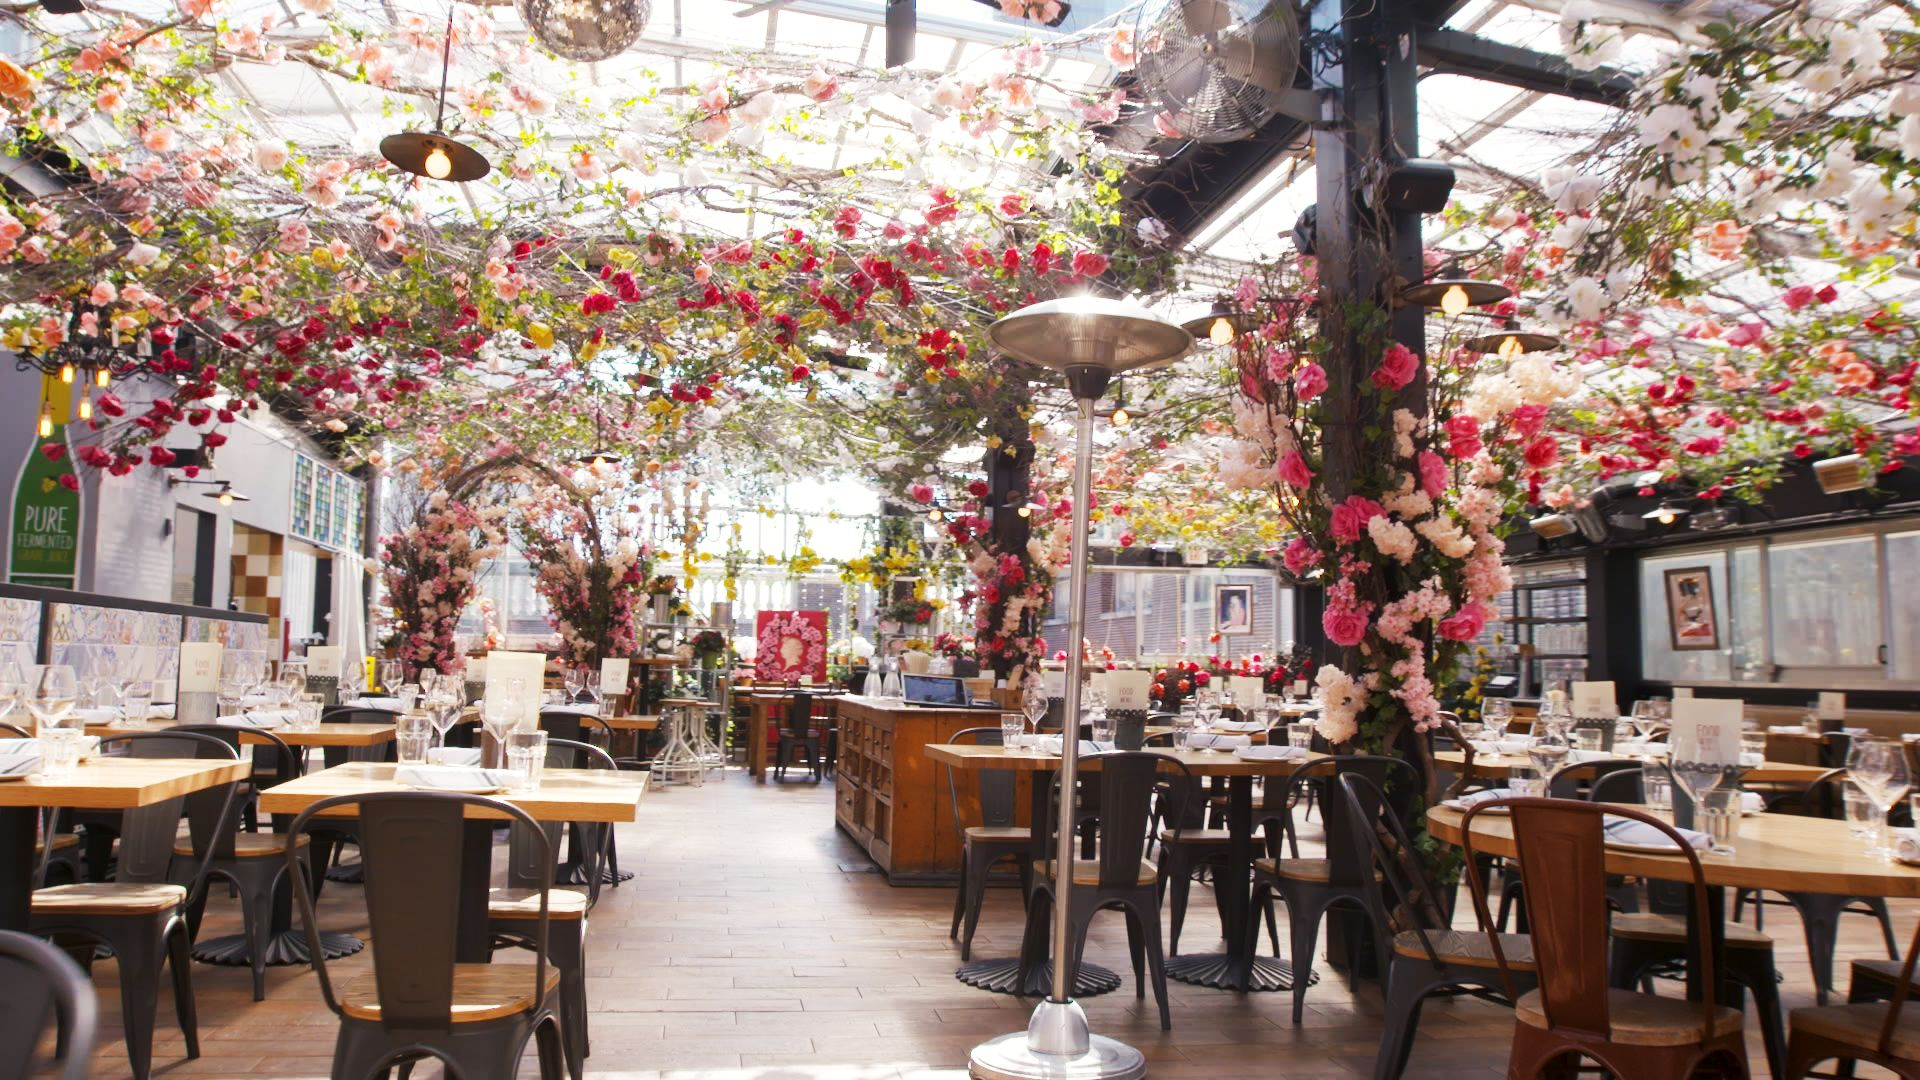 This NYC Rooftop Restaurant Is Covered In Flowers And Ready For Instagram